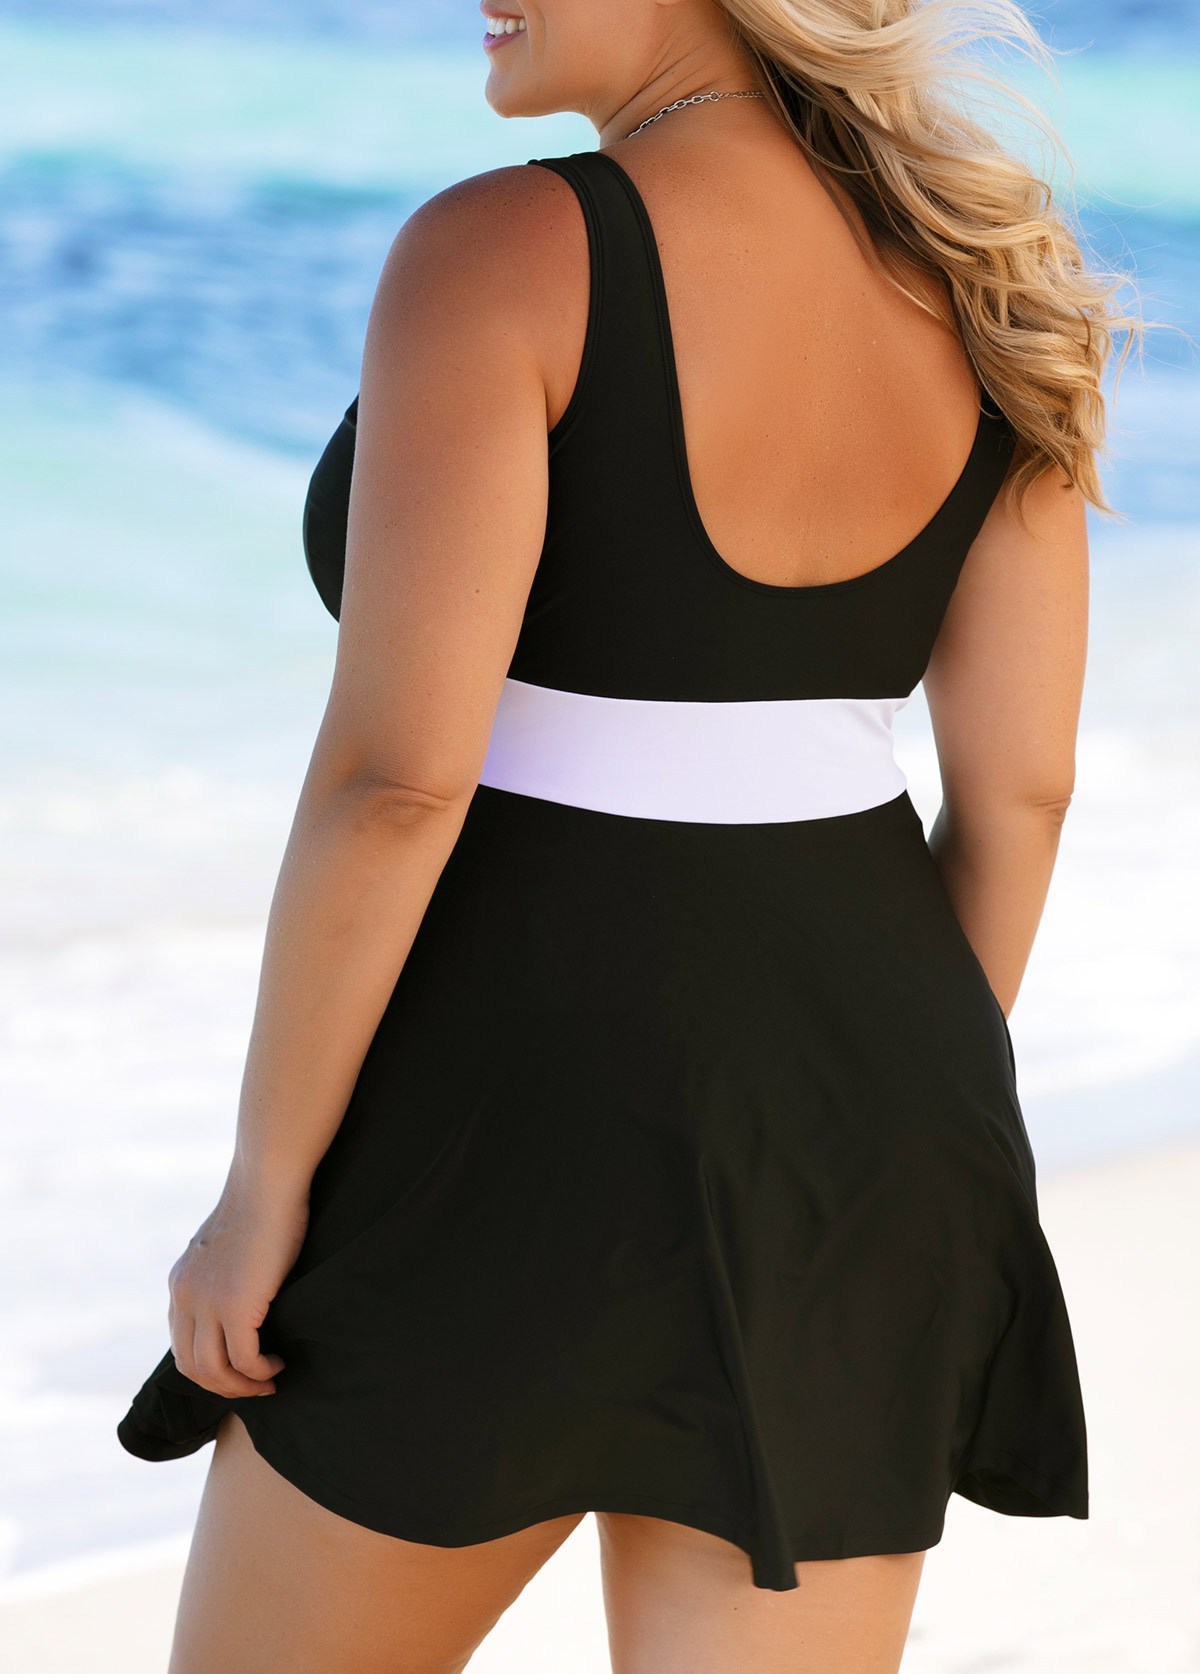 Contrast Plus Size Swimdress and Panty